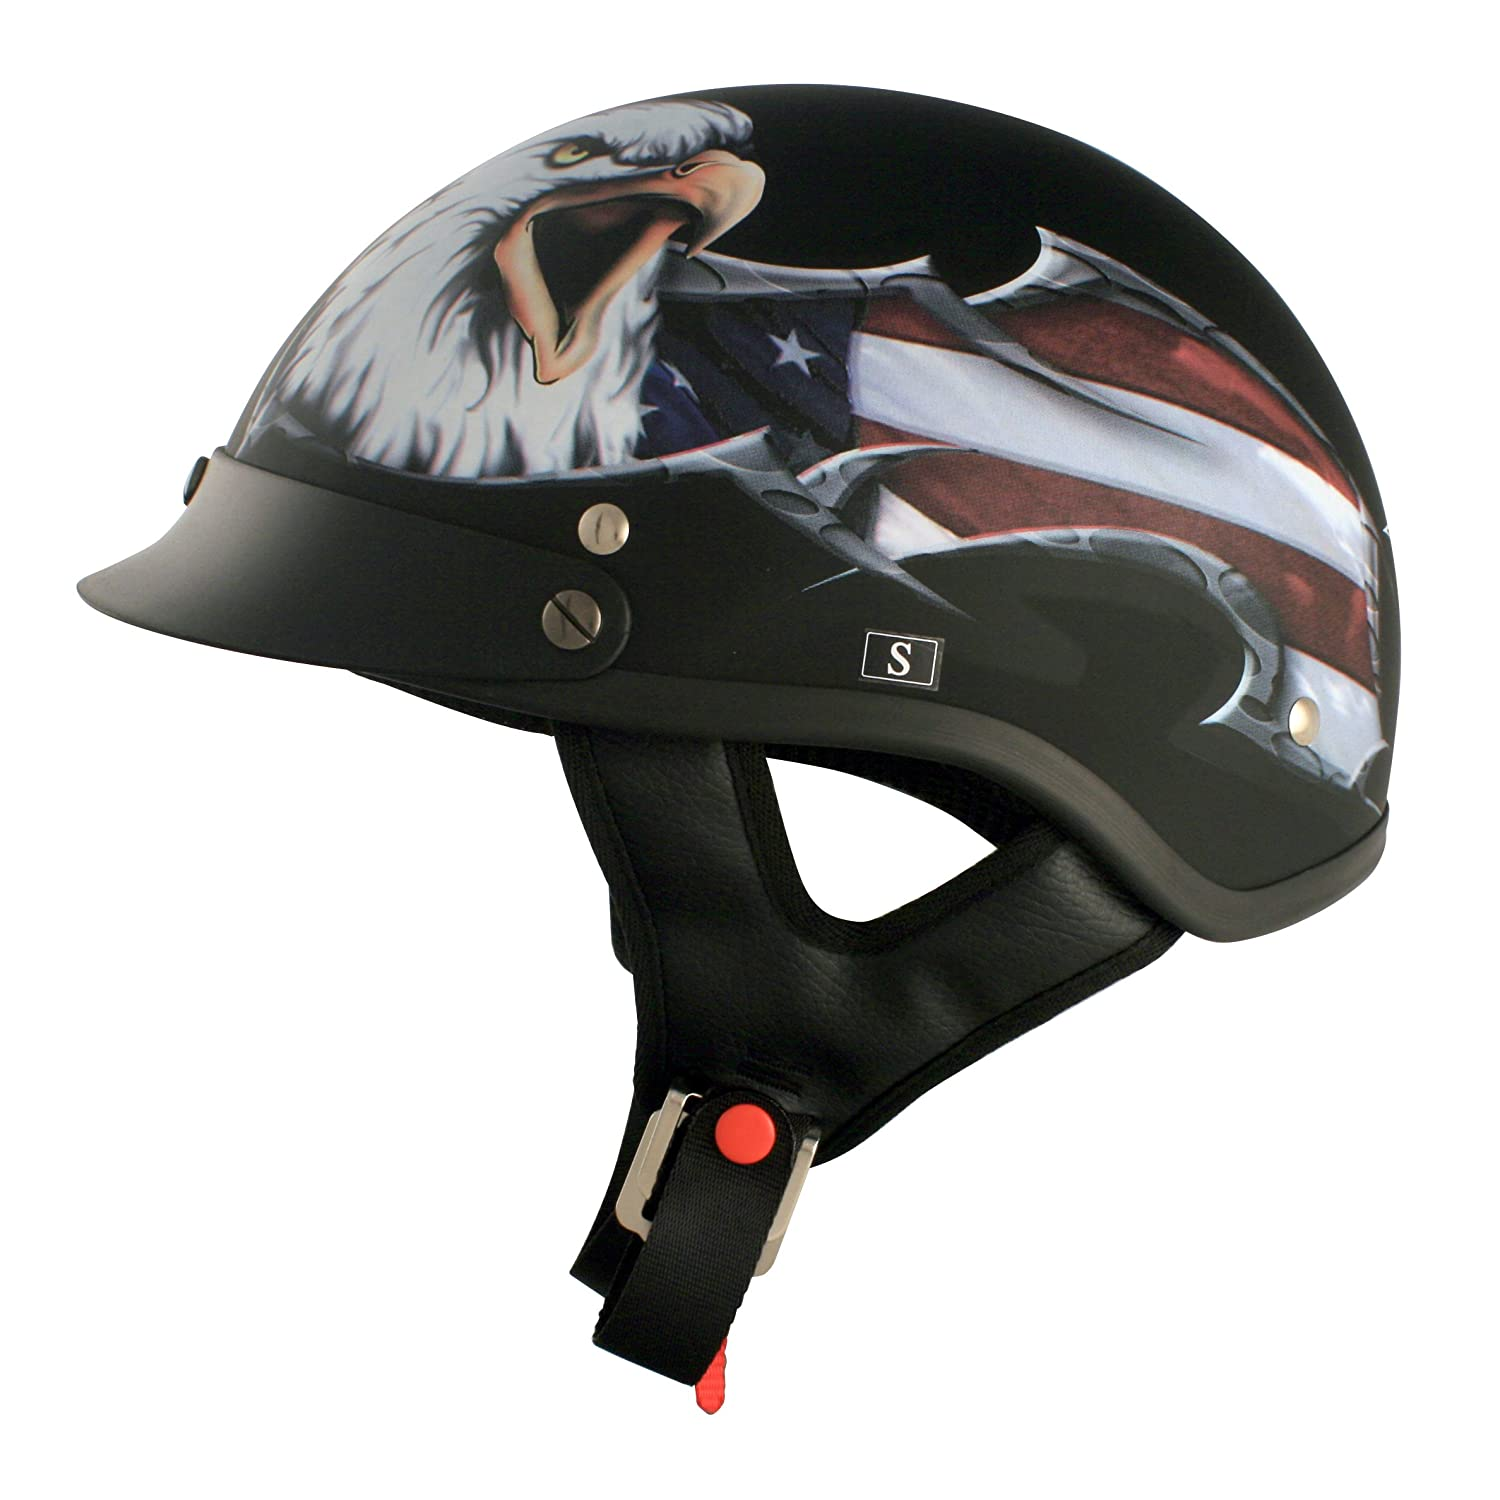 Vcan V531 USA BK Cruiser Patriotic Eagle Graphics Half Helmet